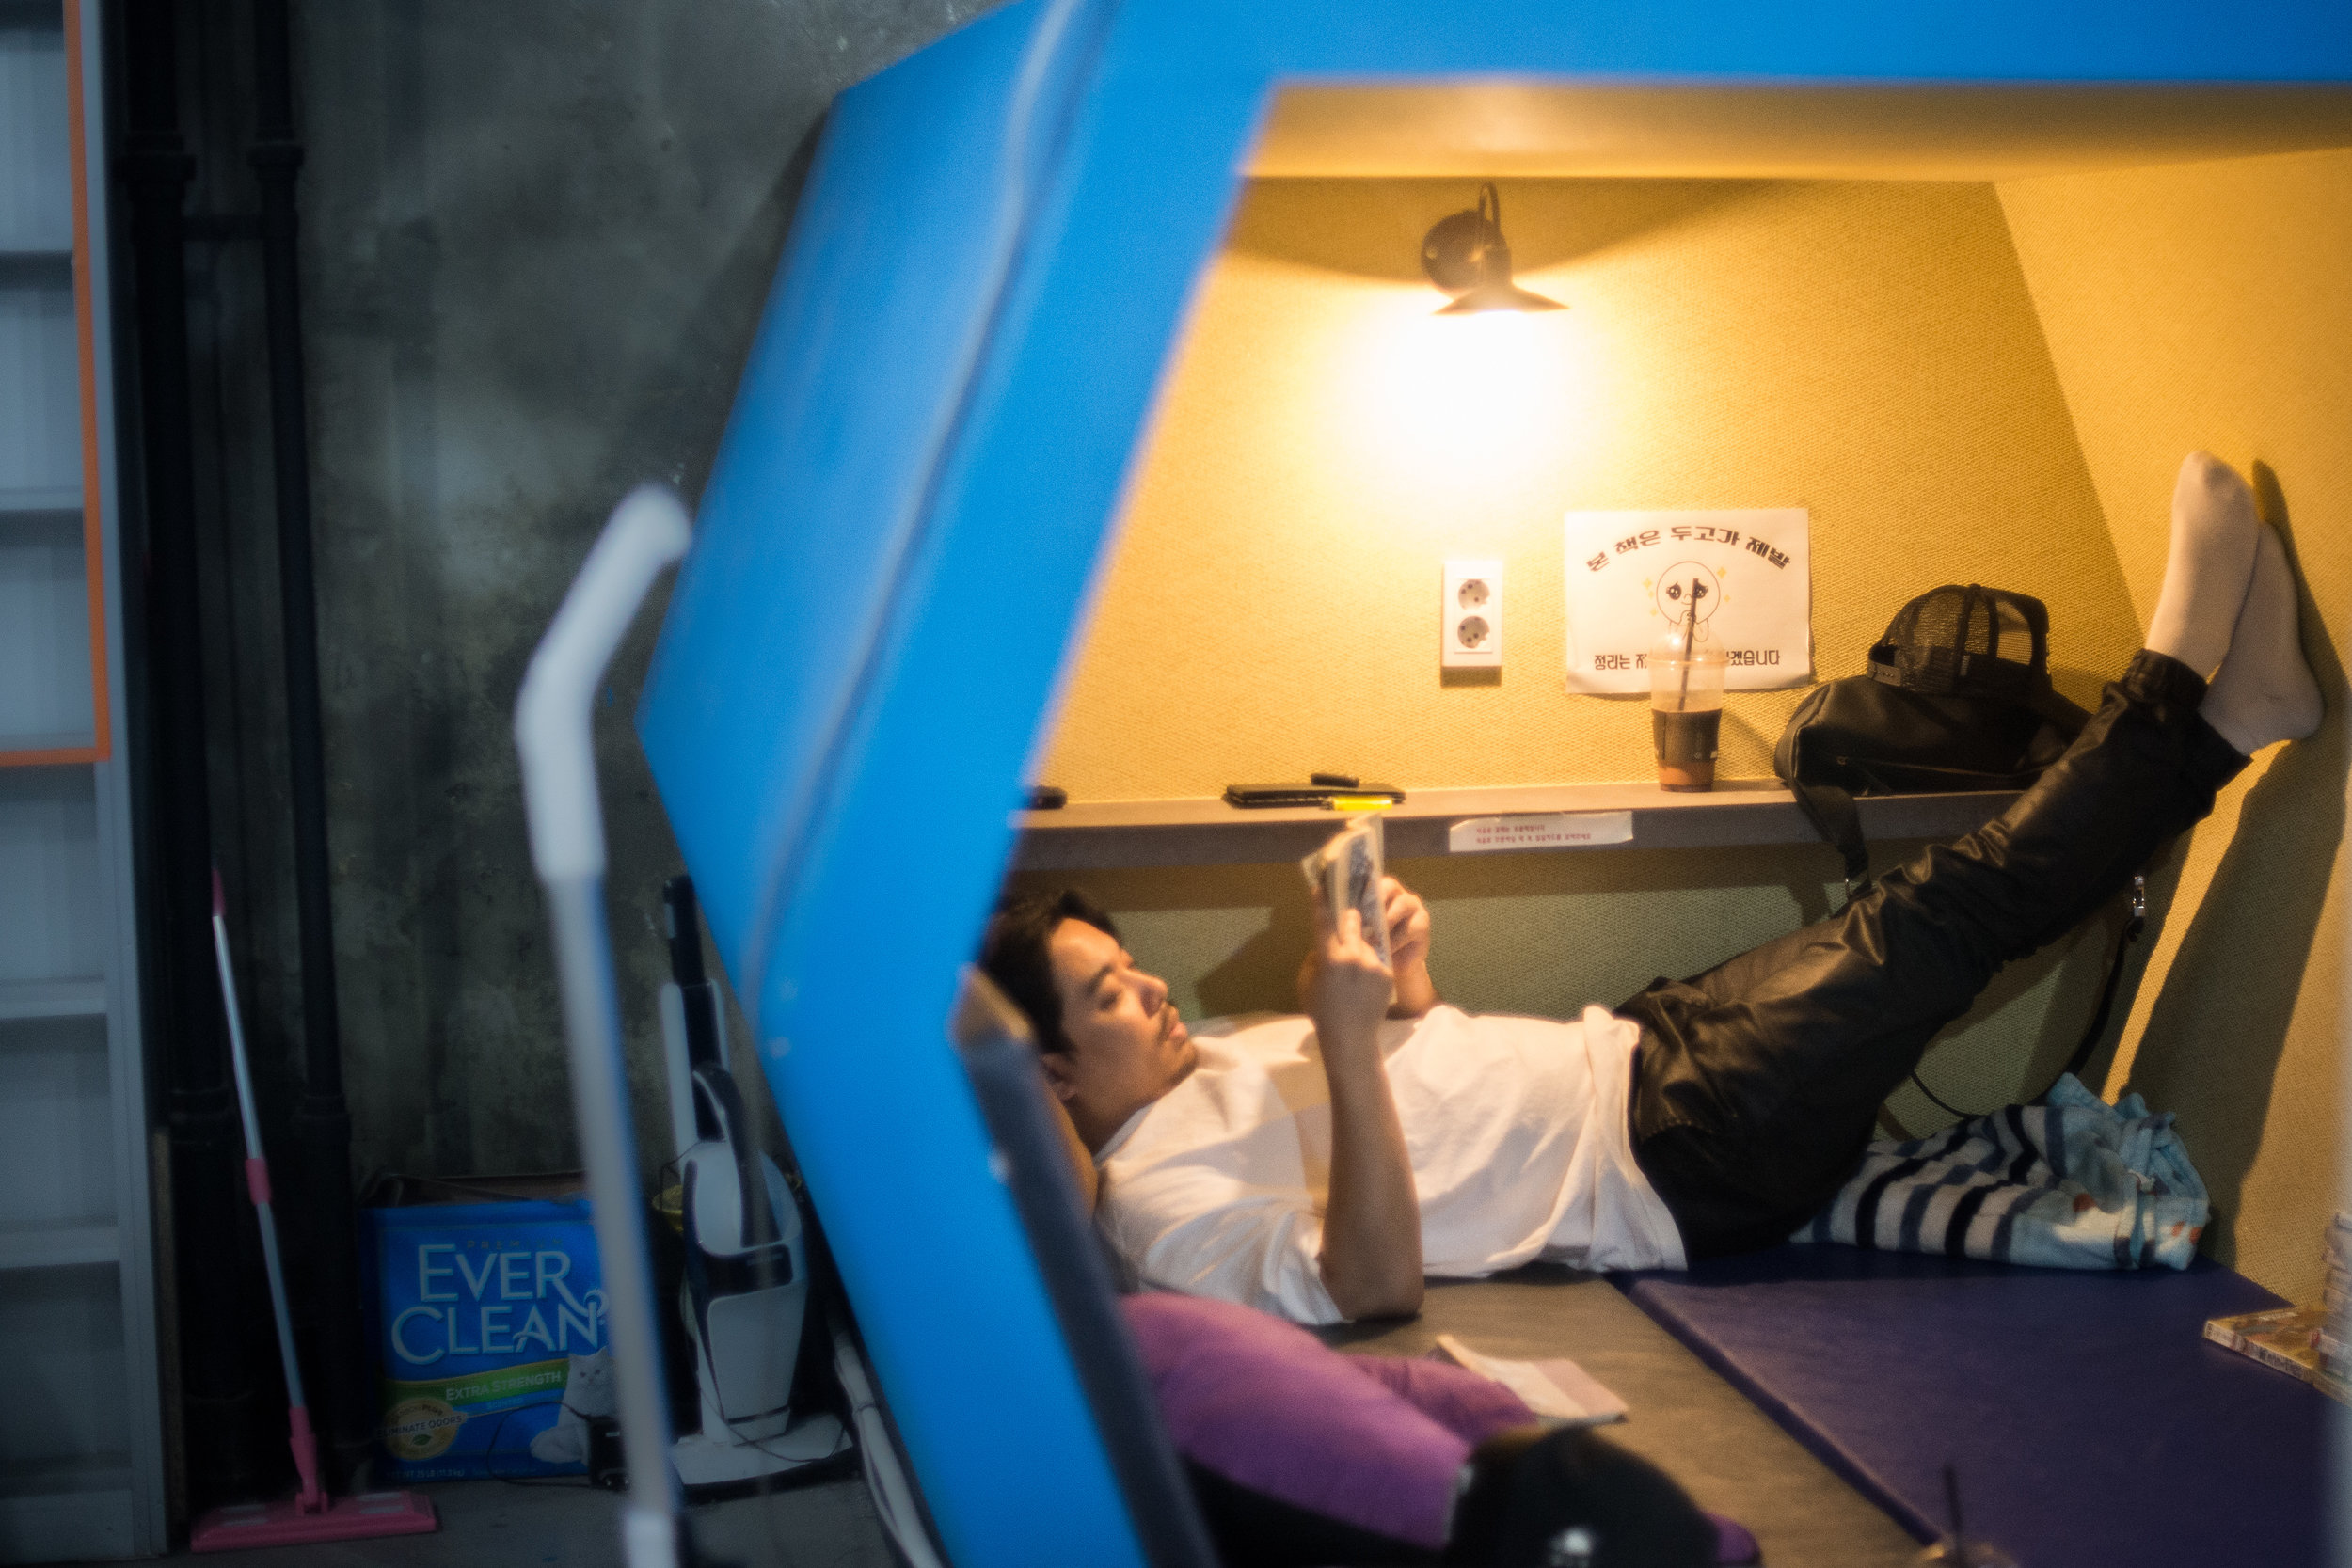 Comic book cafes, open 24 hours a day, provide concentration pods for reading a book in isolation.